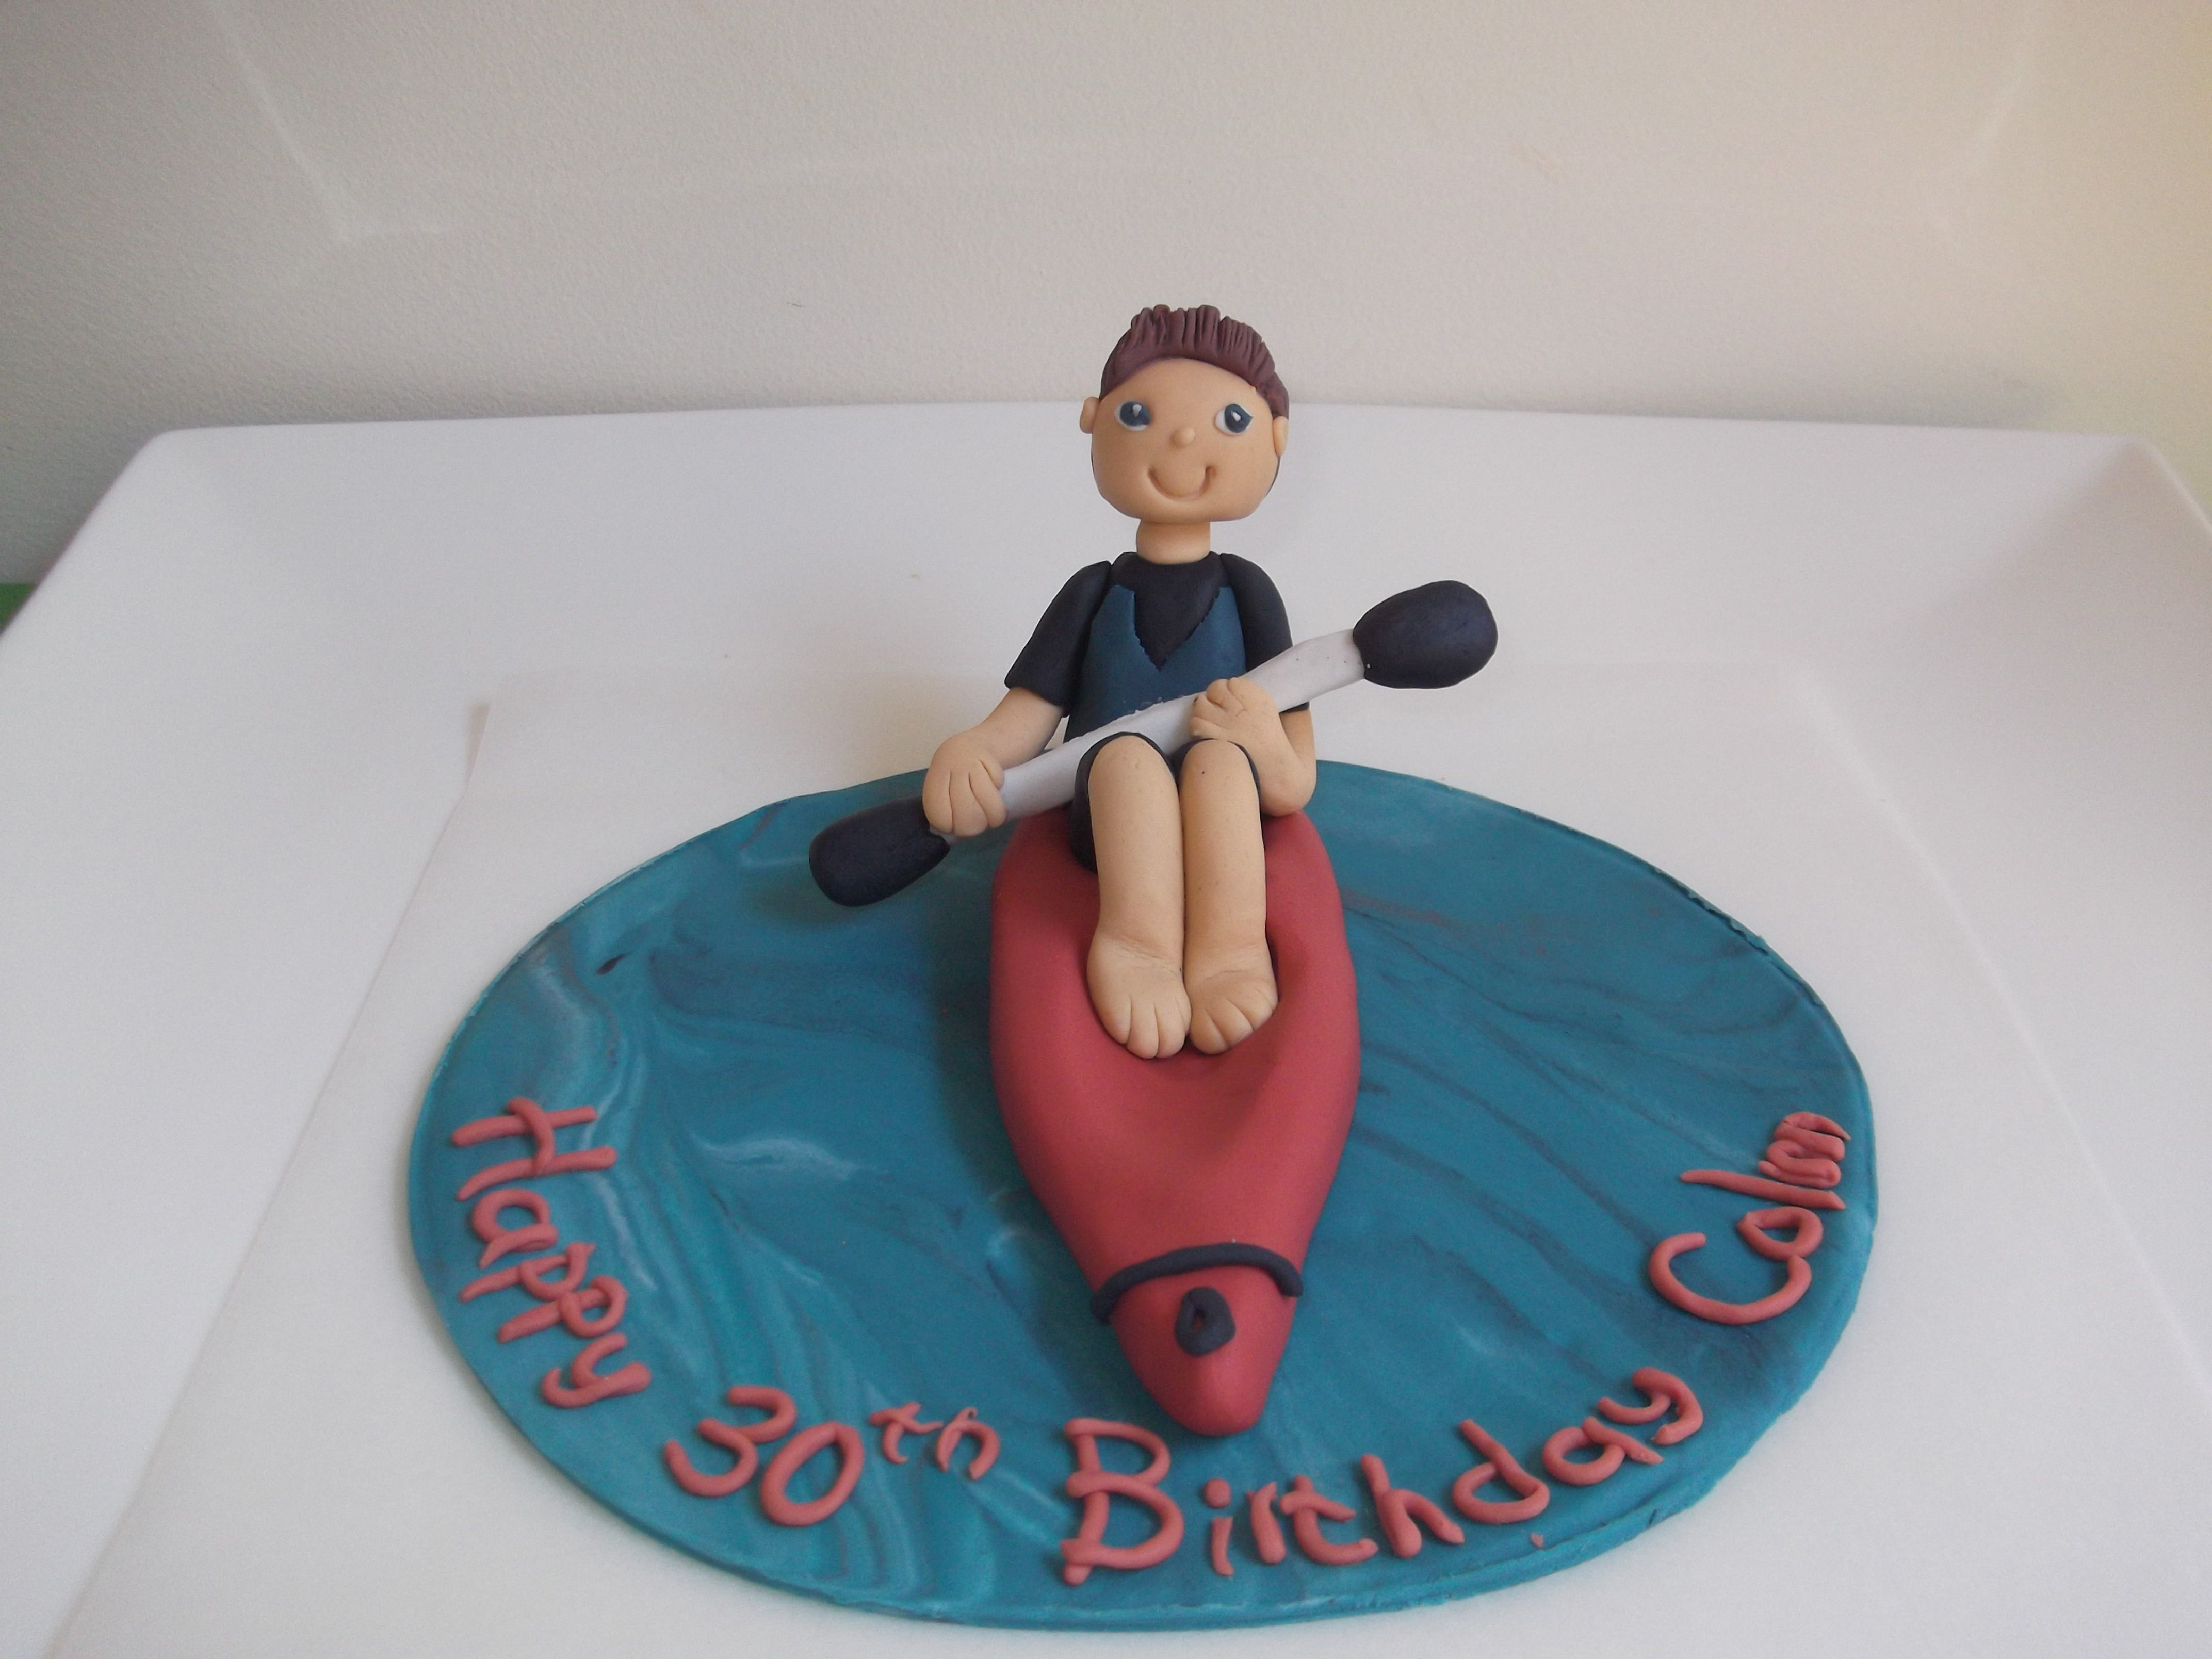 A Figure In A Kayak Cake Topper For A 30th Birthday Party Cake Please Visit Our Facebook Page Cakes And Topper Kayak Cake Lake Birthday Birthday Party Cake